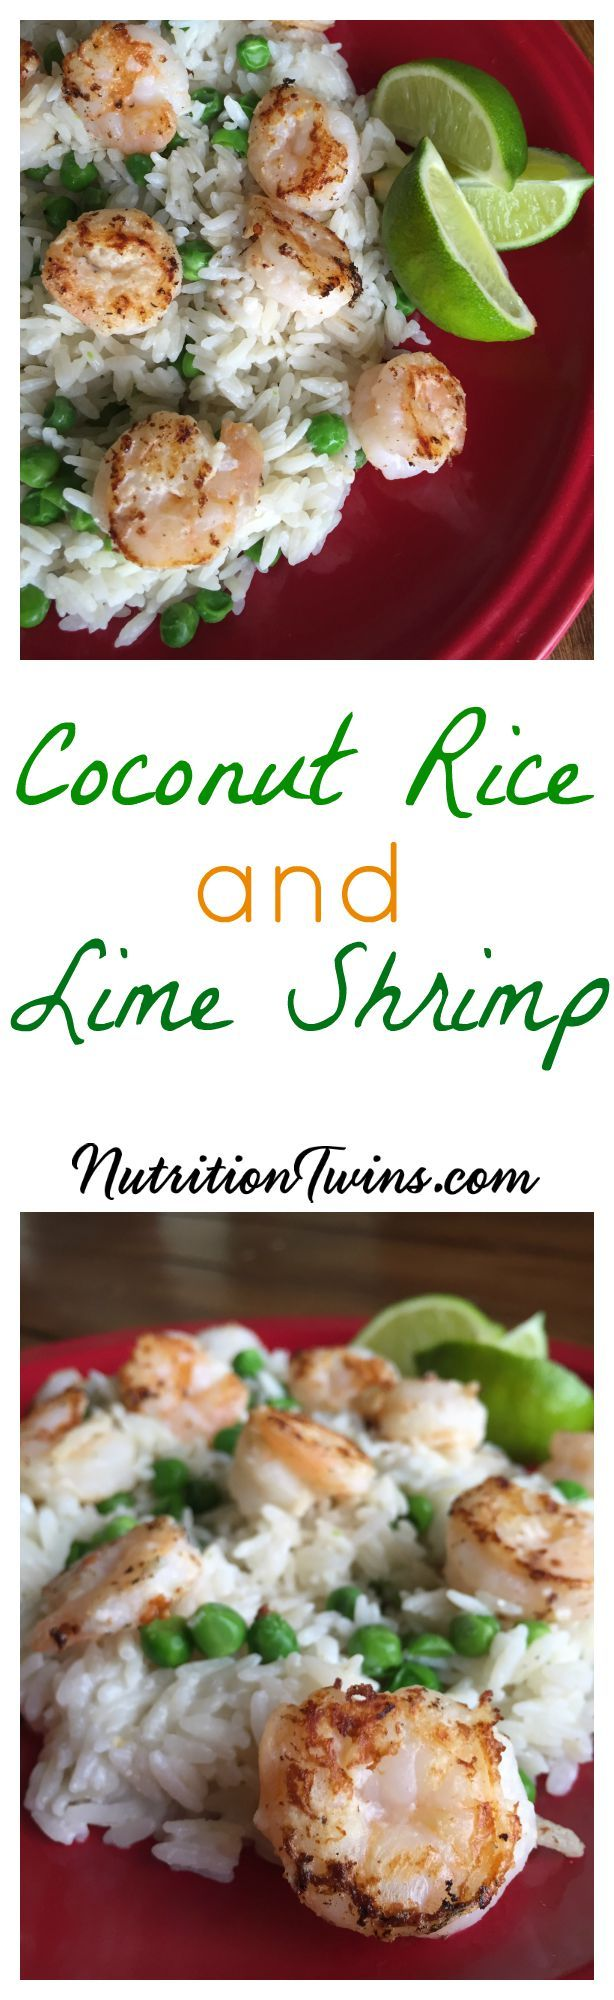 Lime Shrimp with Coconut Rice Only 315 Calories| Sweet & Creamy Rice, Succulent Shrimp | For Nutrition & Fitness Tips & RECIPES please SIGN UP for our FREE NEWSLETTER NutritionTwins.com